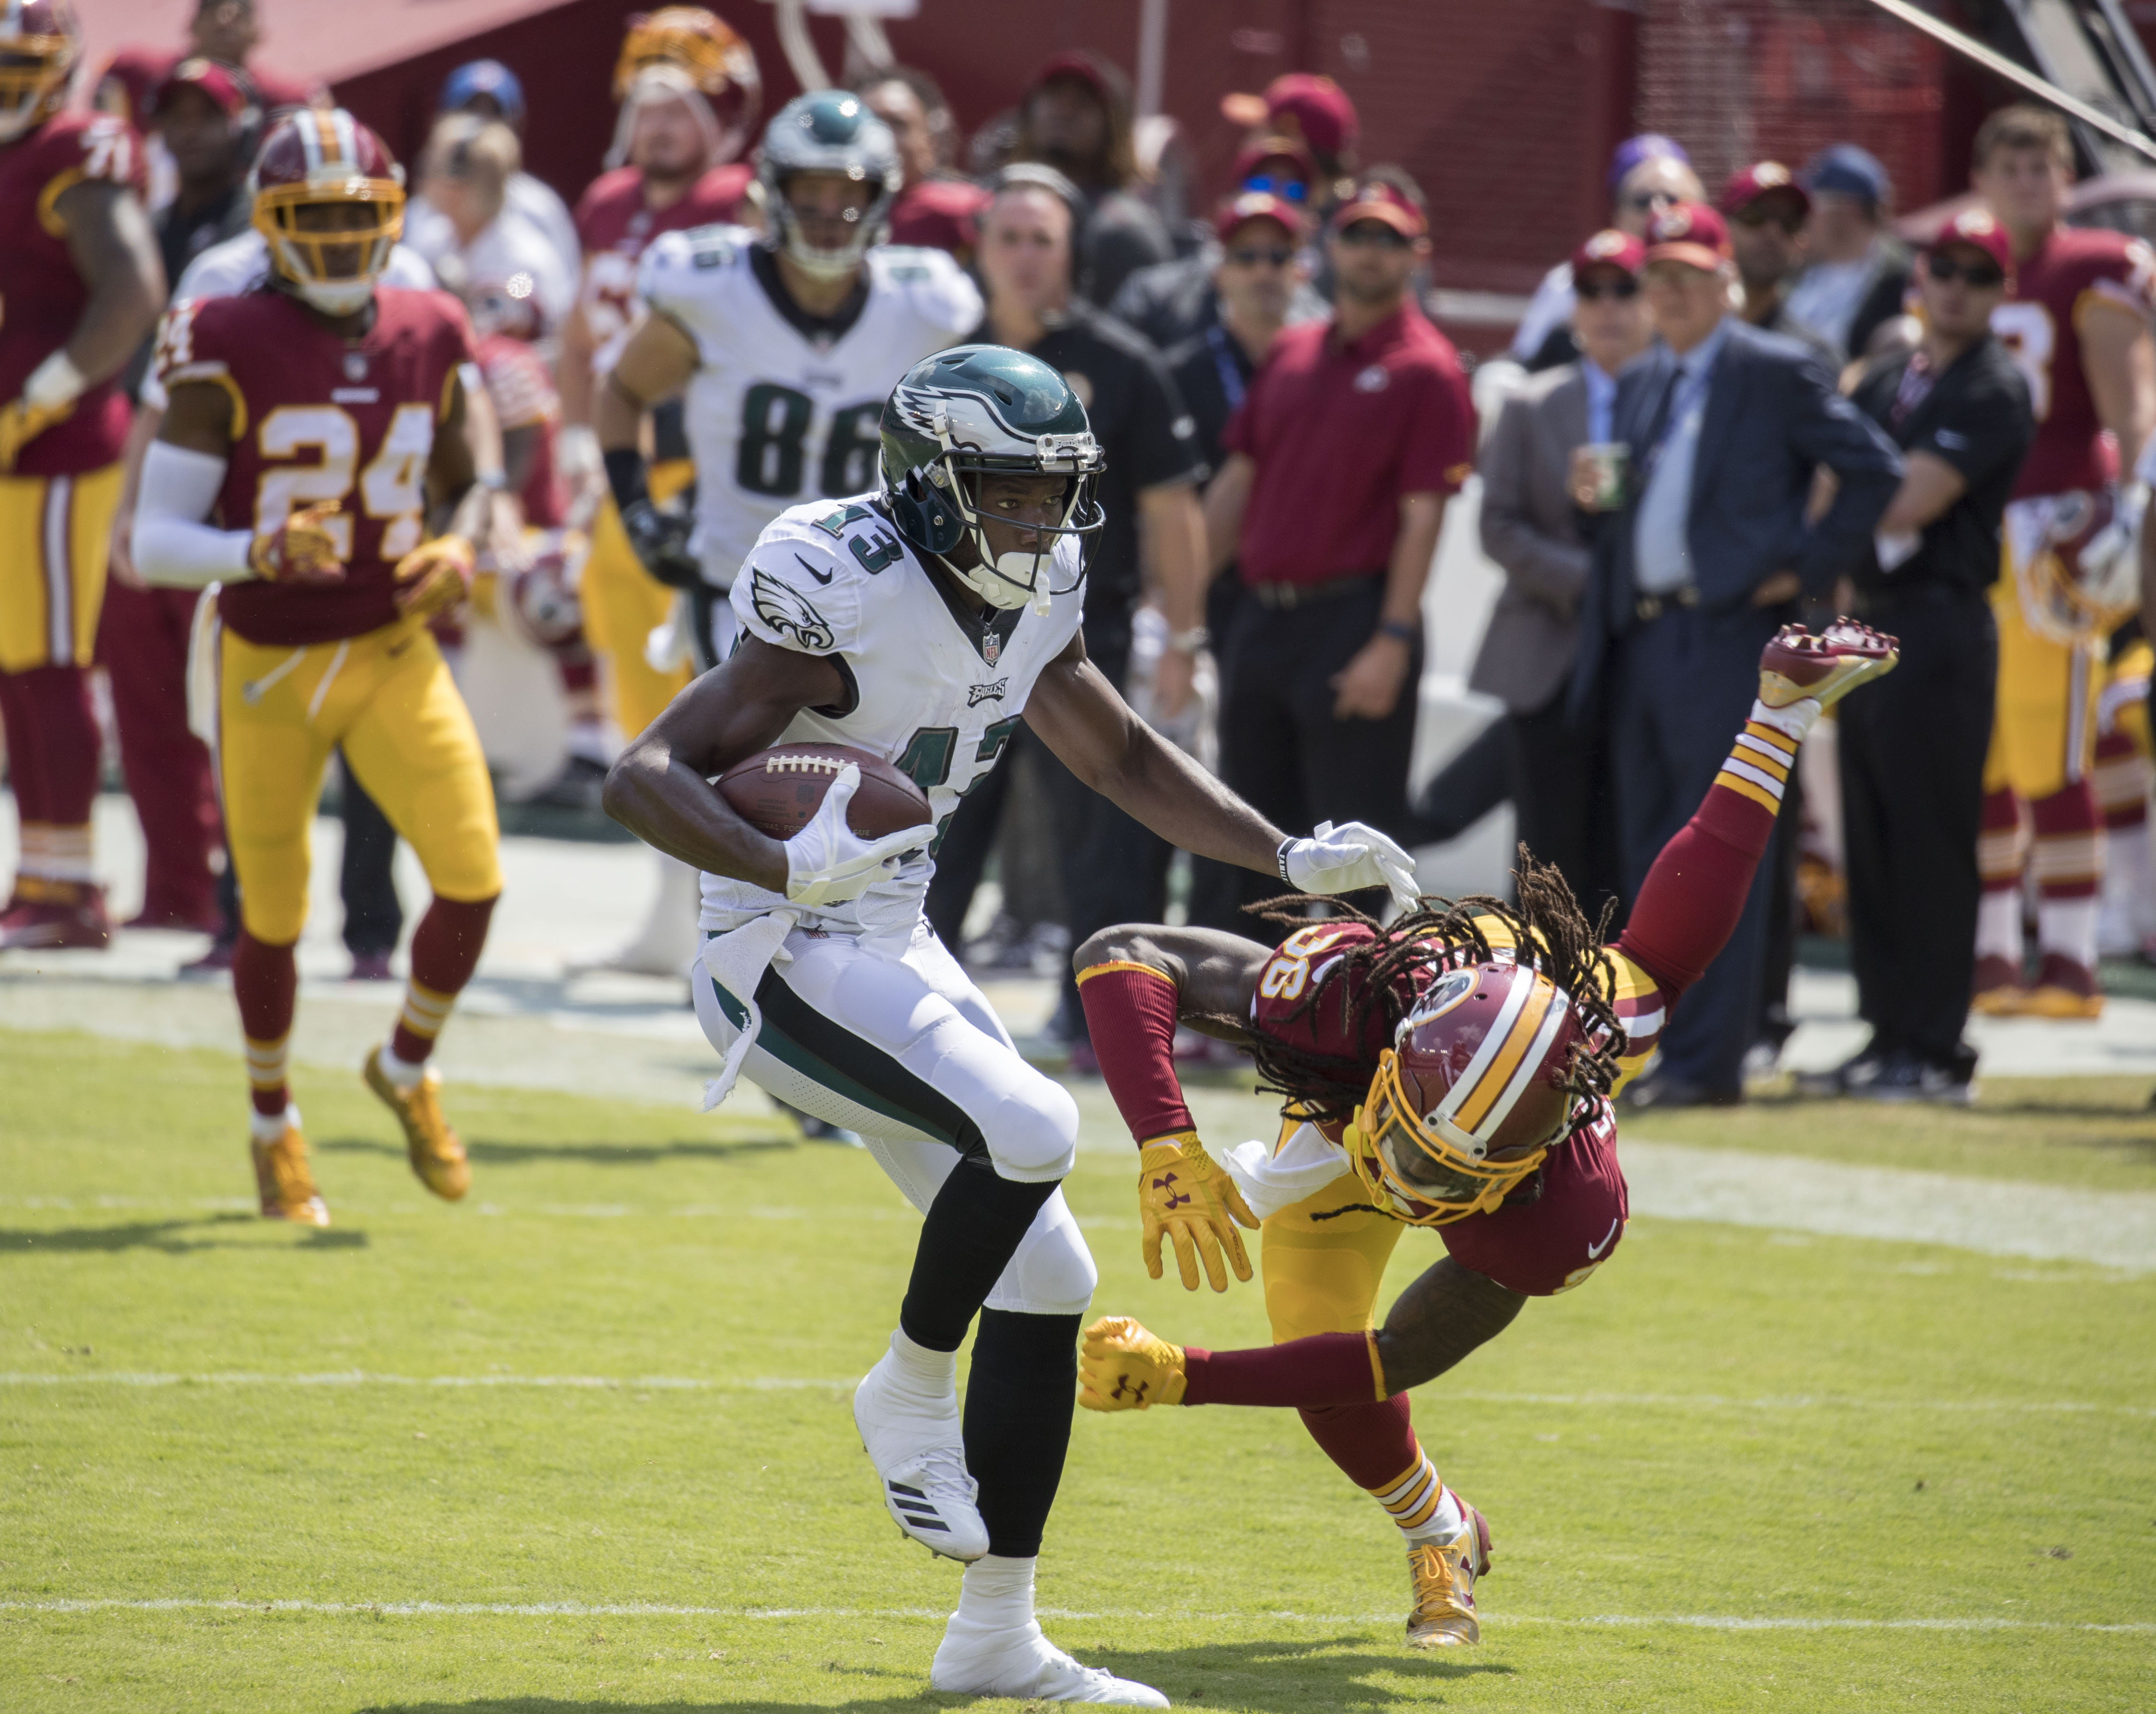 f14049046de Agholor breaking a tackle before scoring a touchdown against the Washington  Redskins in 2017